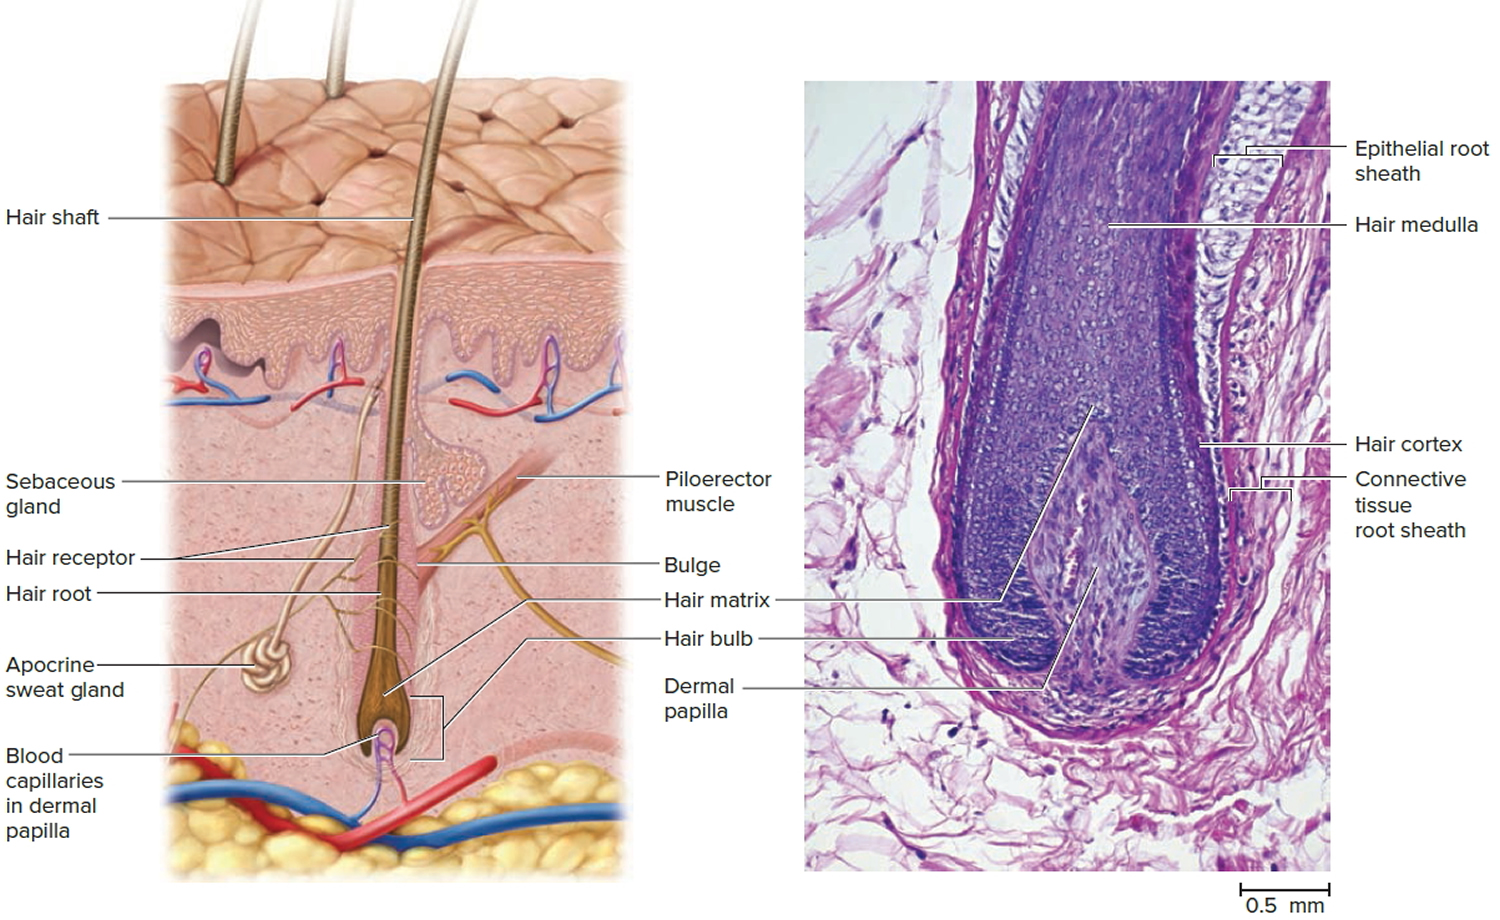 Hair - Shaft, Follicle, Structure, Hair Bulb - Root & Function